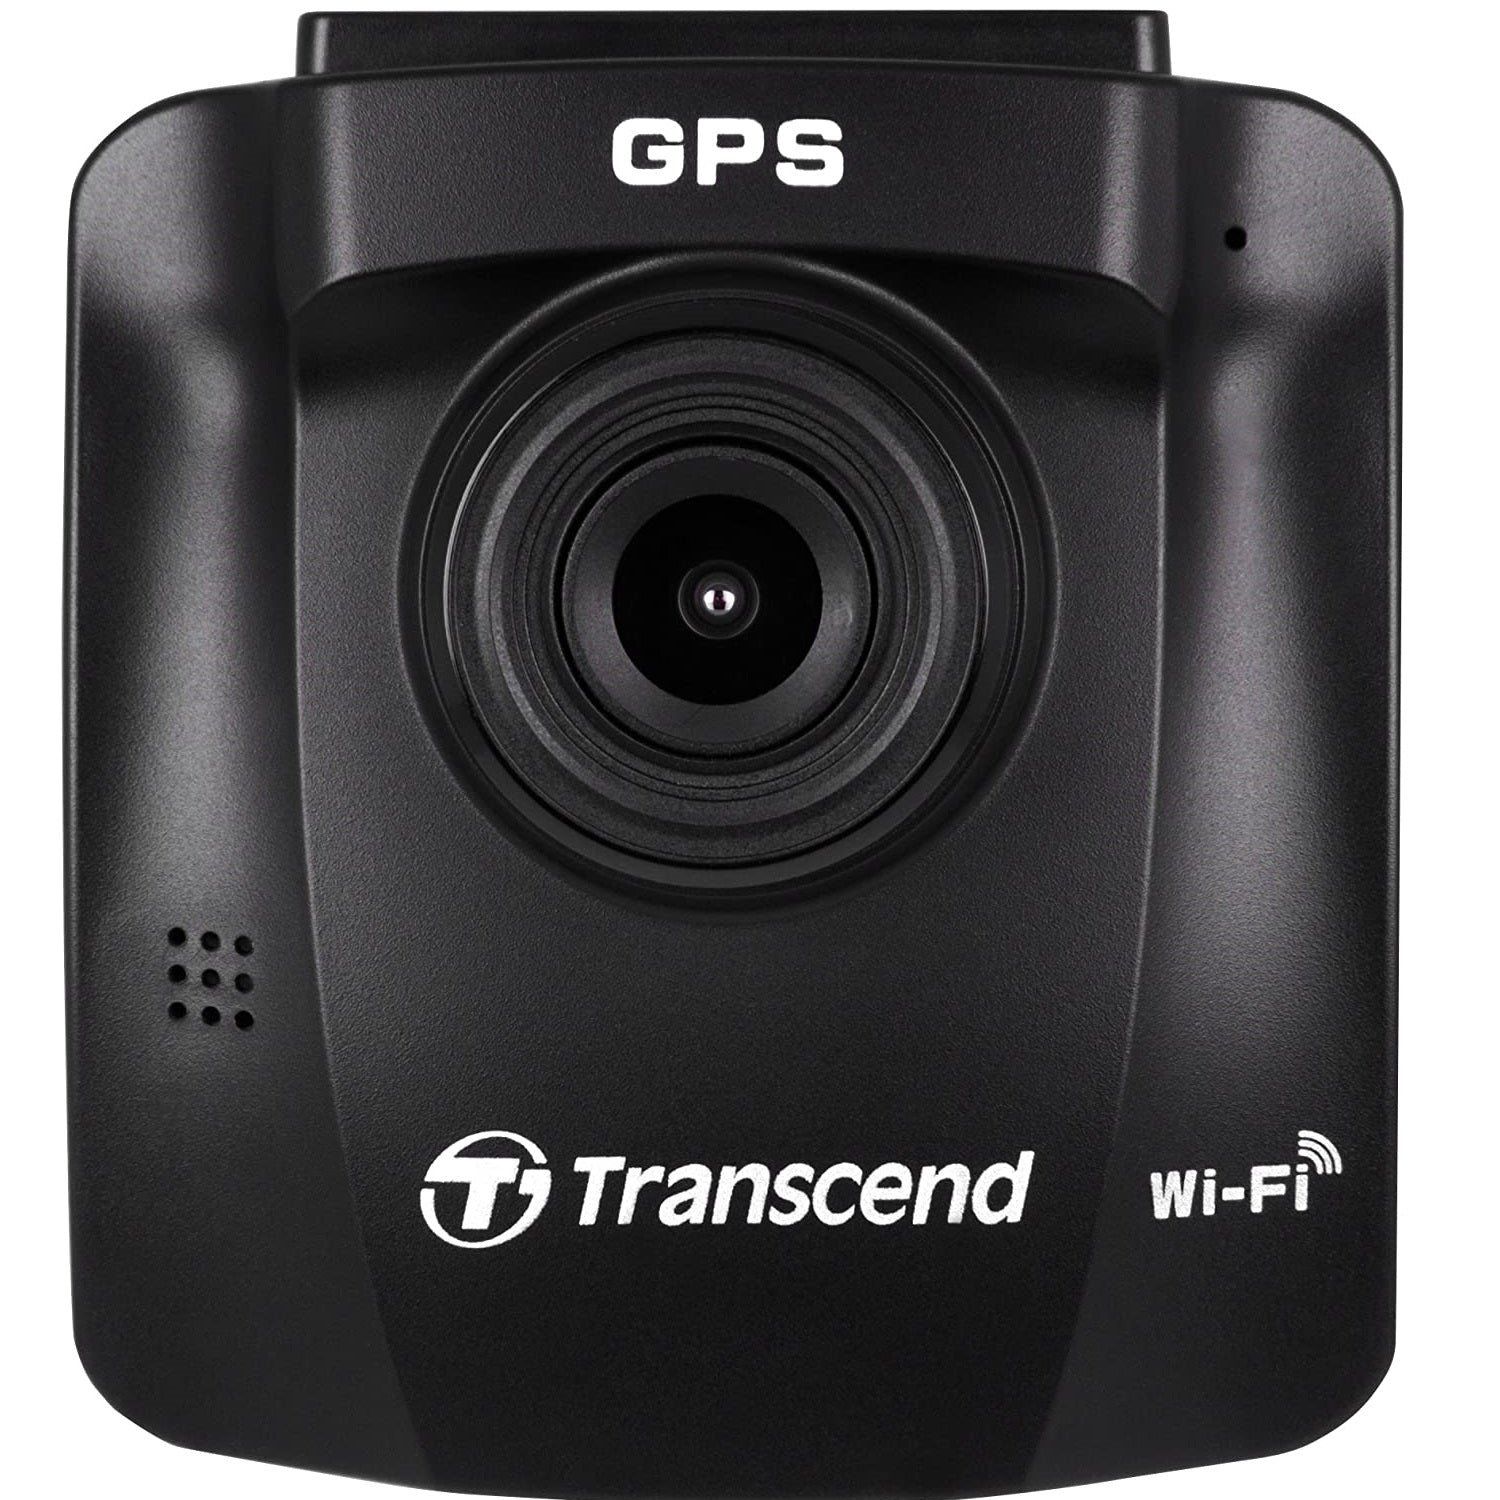 Transcend Drive Pro 230 1080p HD Wi-Fi GPS Car Dashboard Video Camera